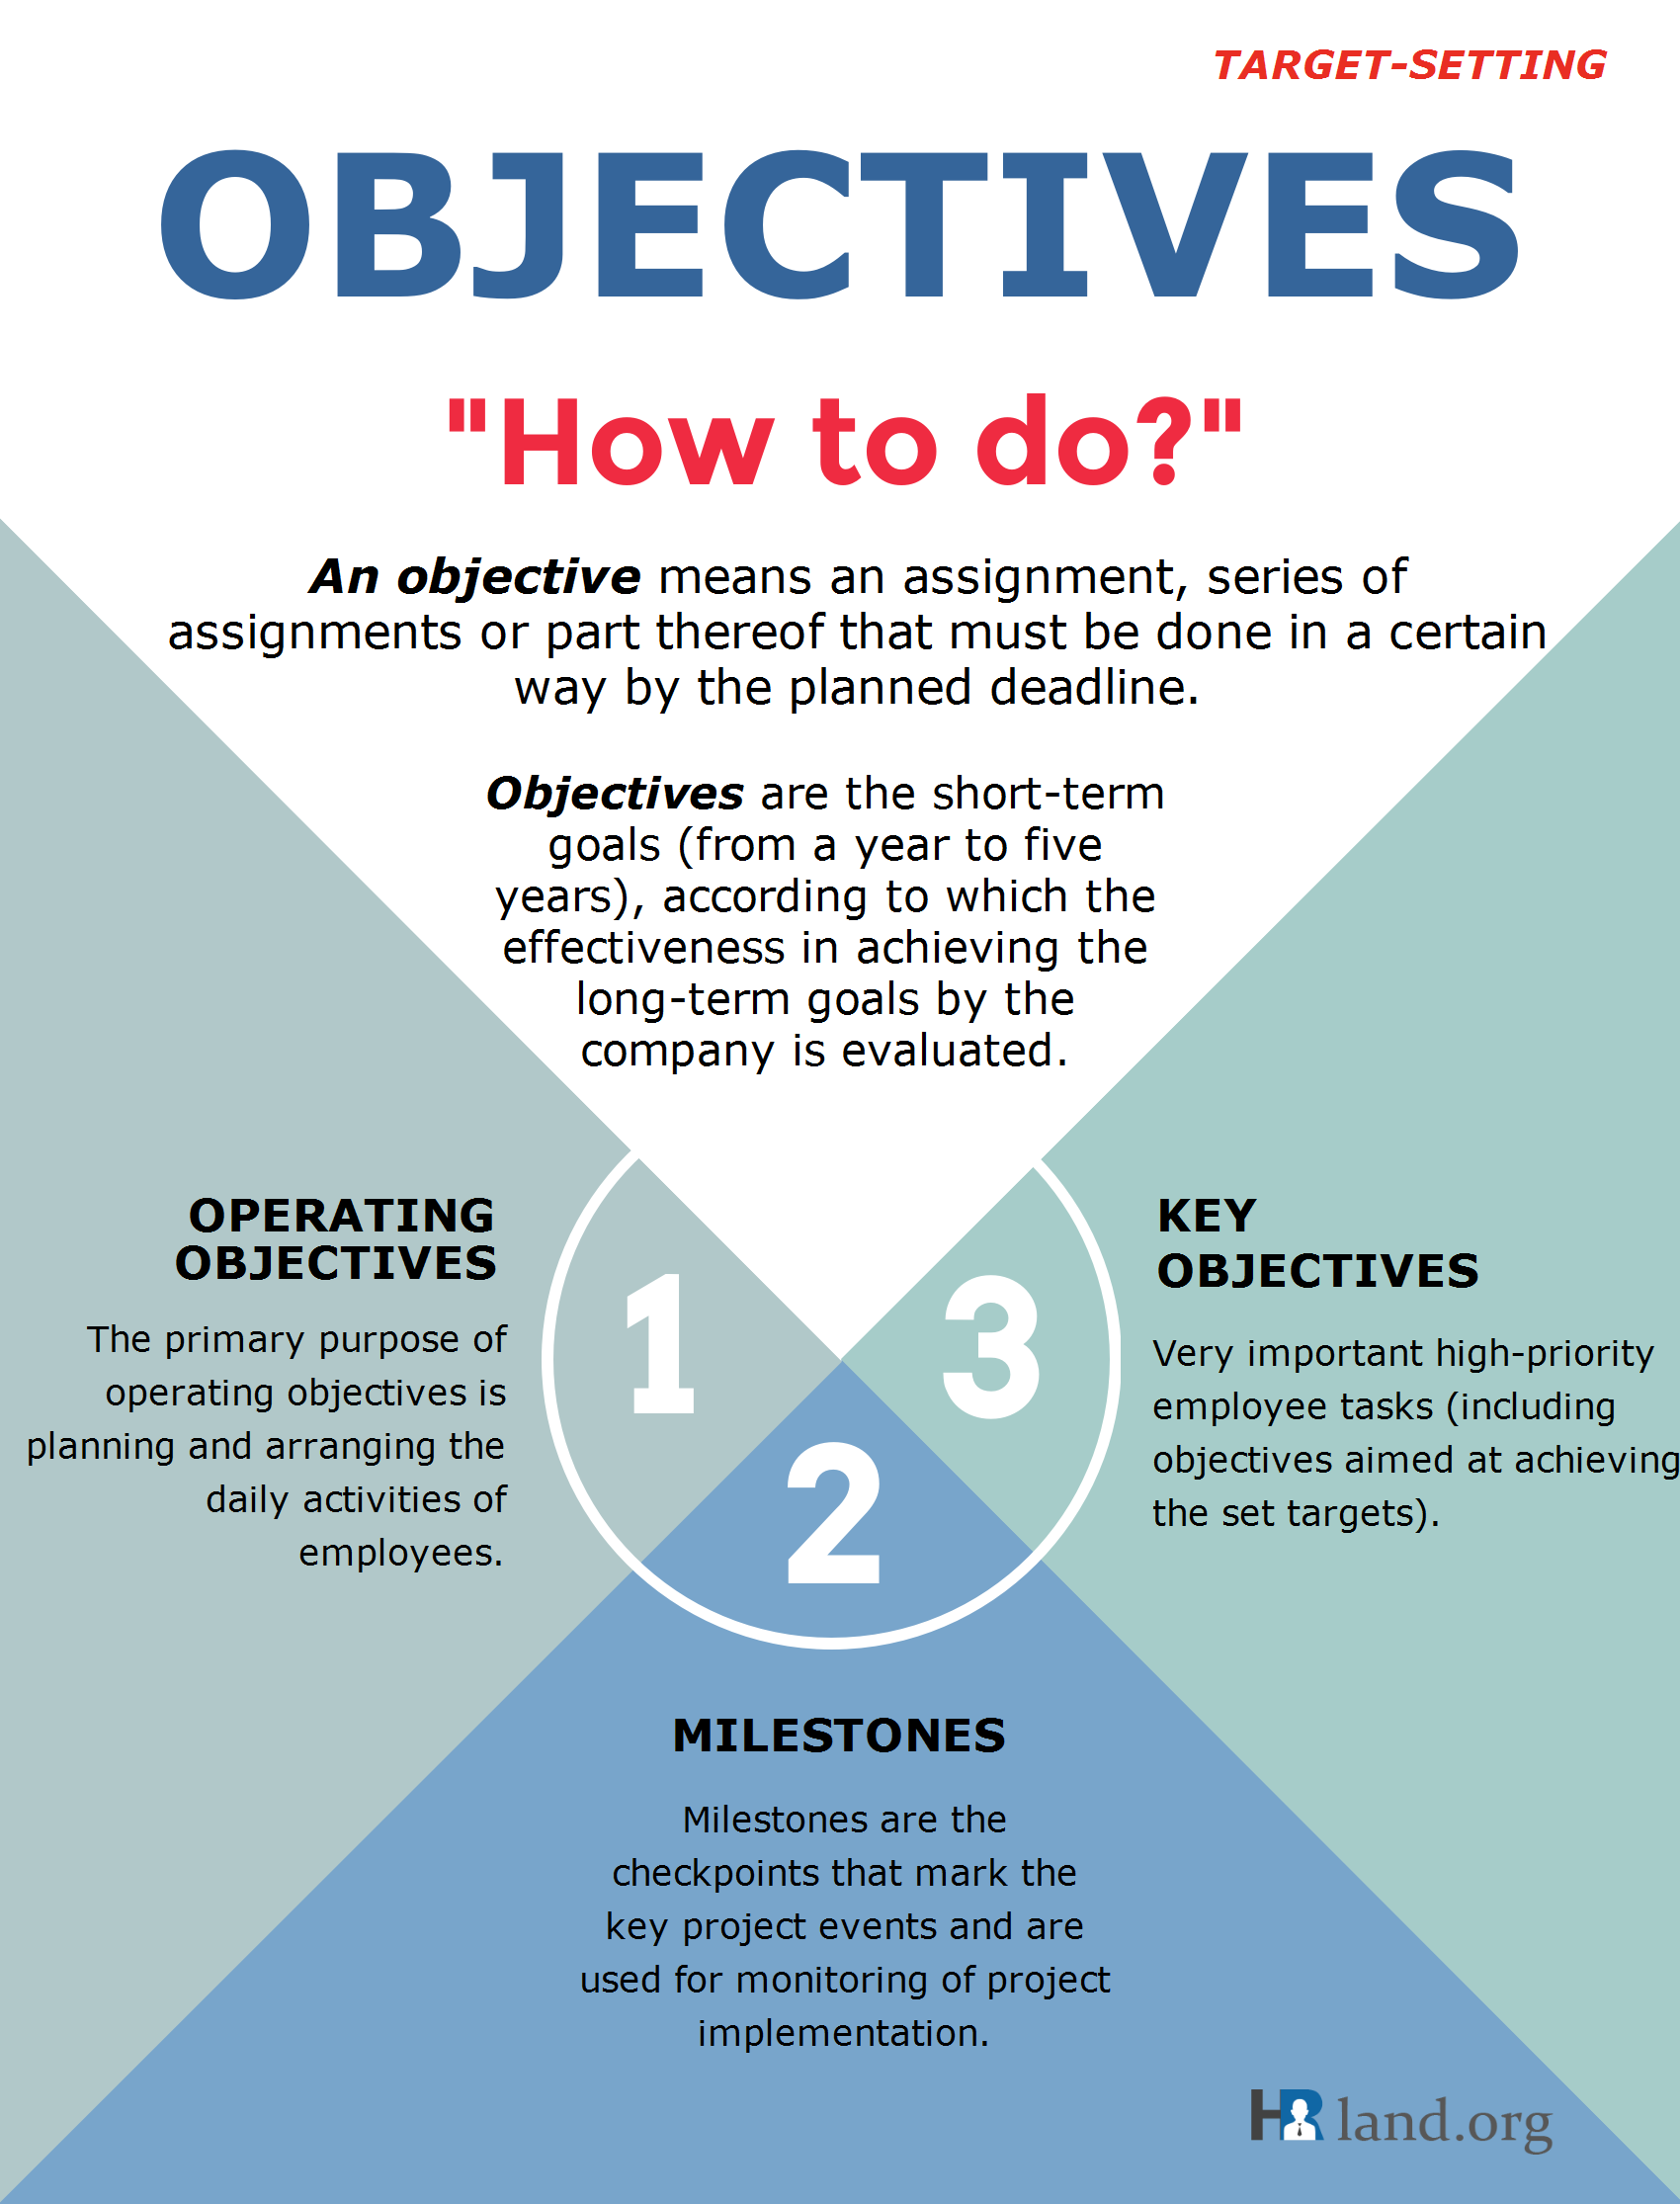 OBJECTIVES_target-setting